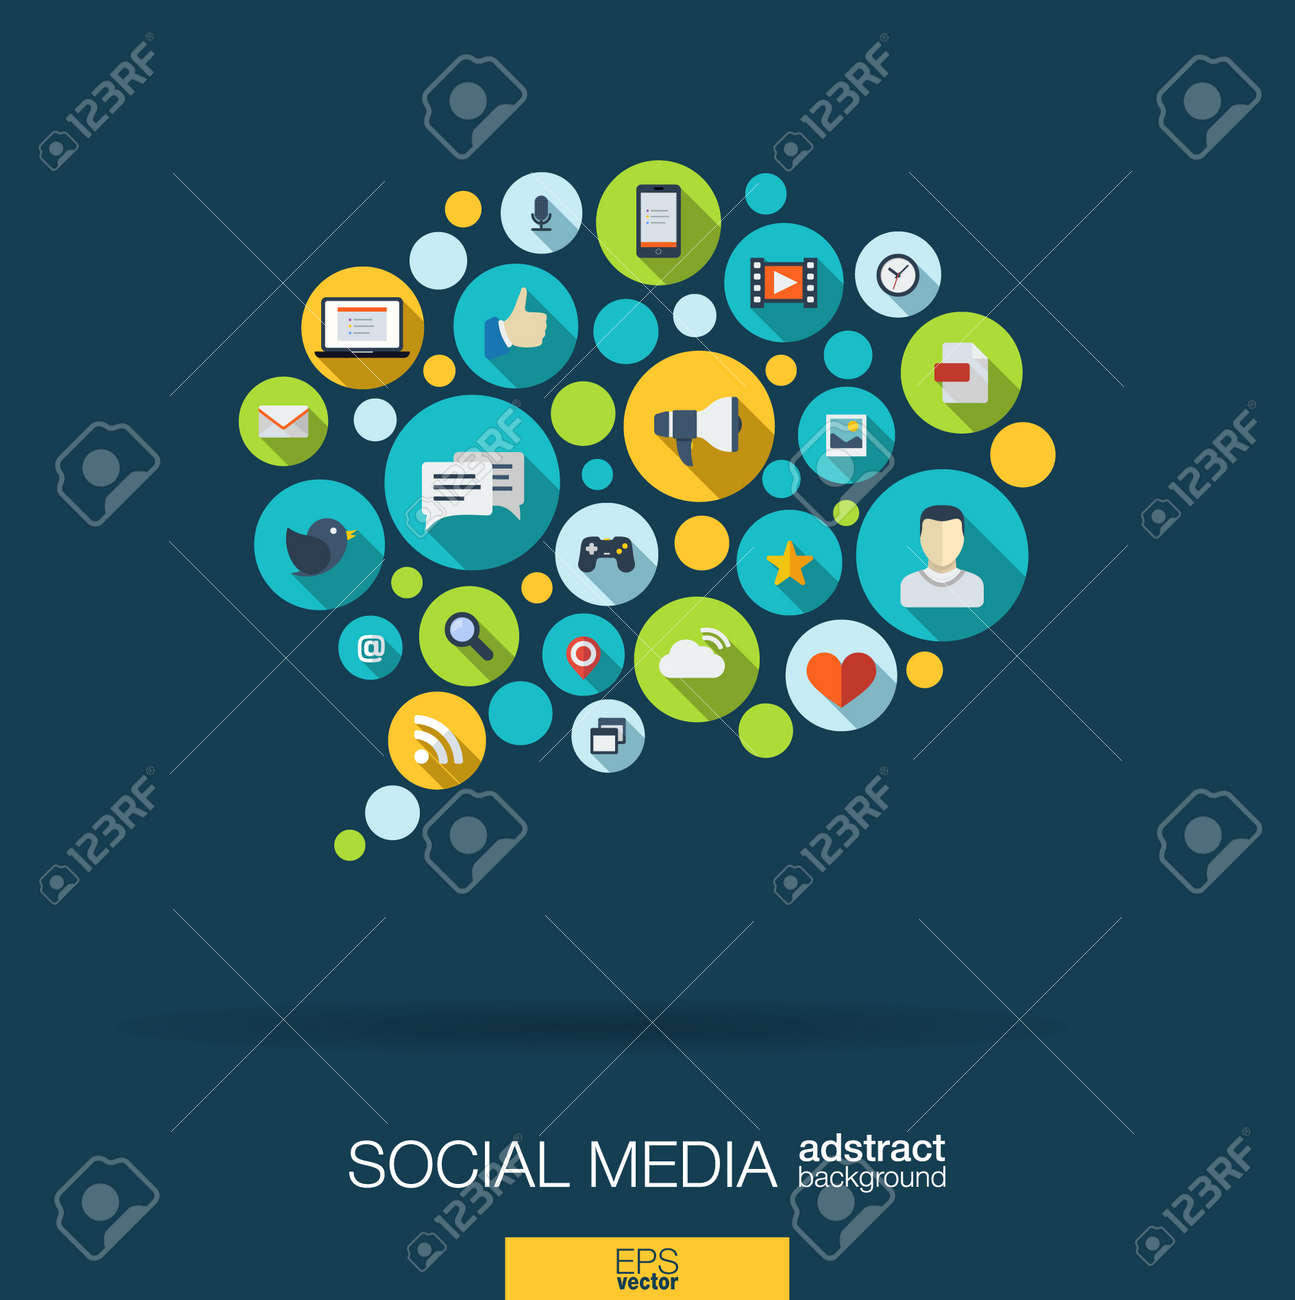 Color circles, flat icons in a speech bubble shape: technology, social media, network, computer concept. Abstract background with connected objects in integrated group of elements. Vector illustration - 53668071